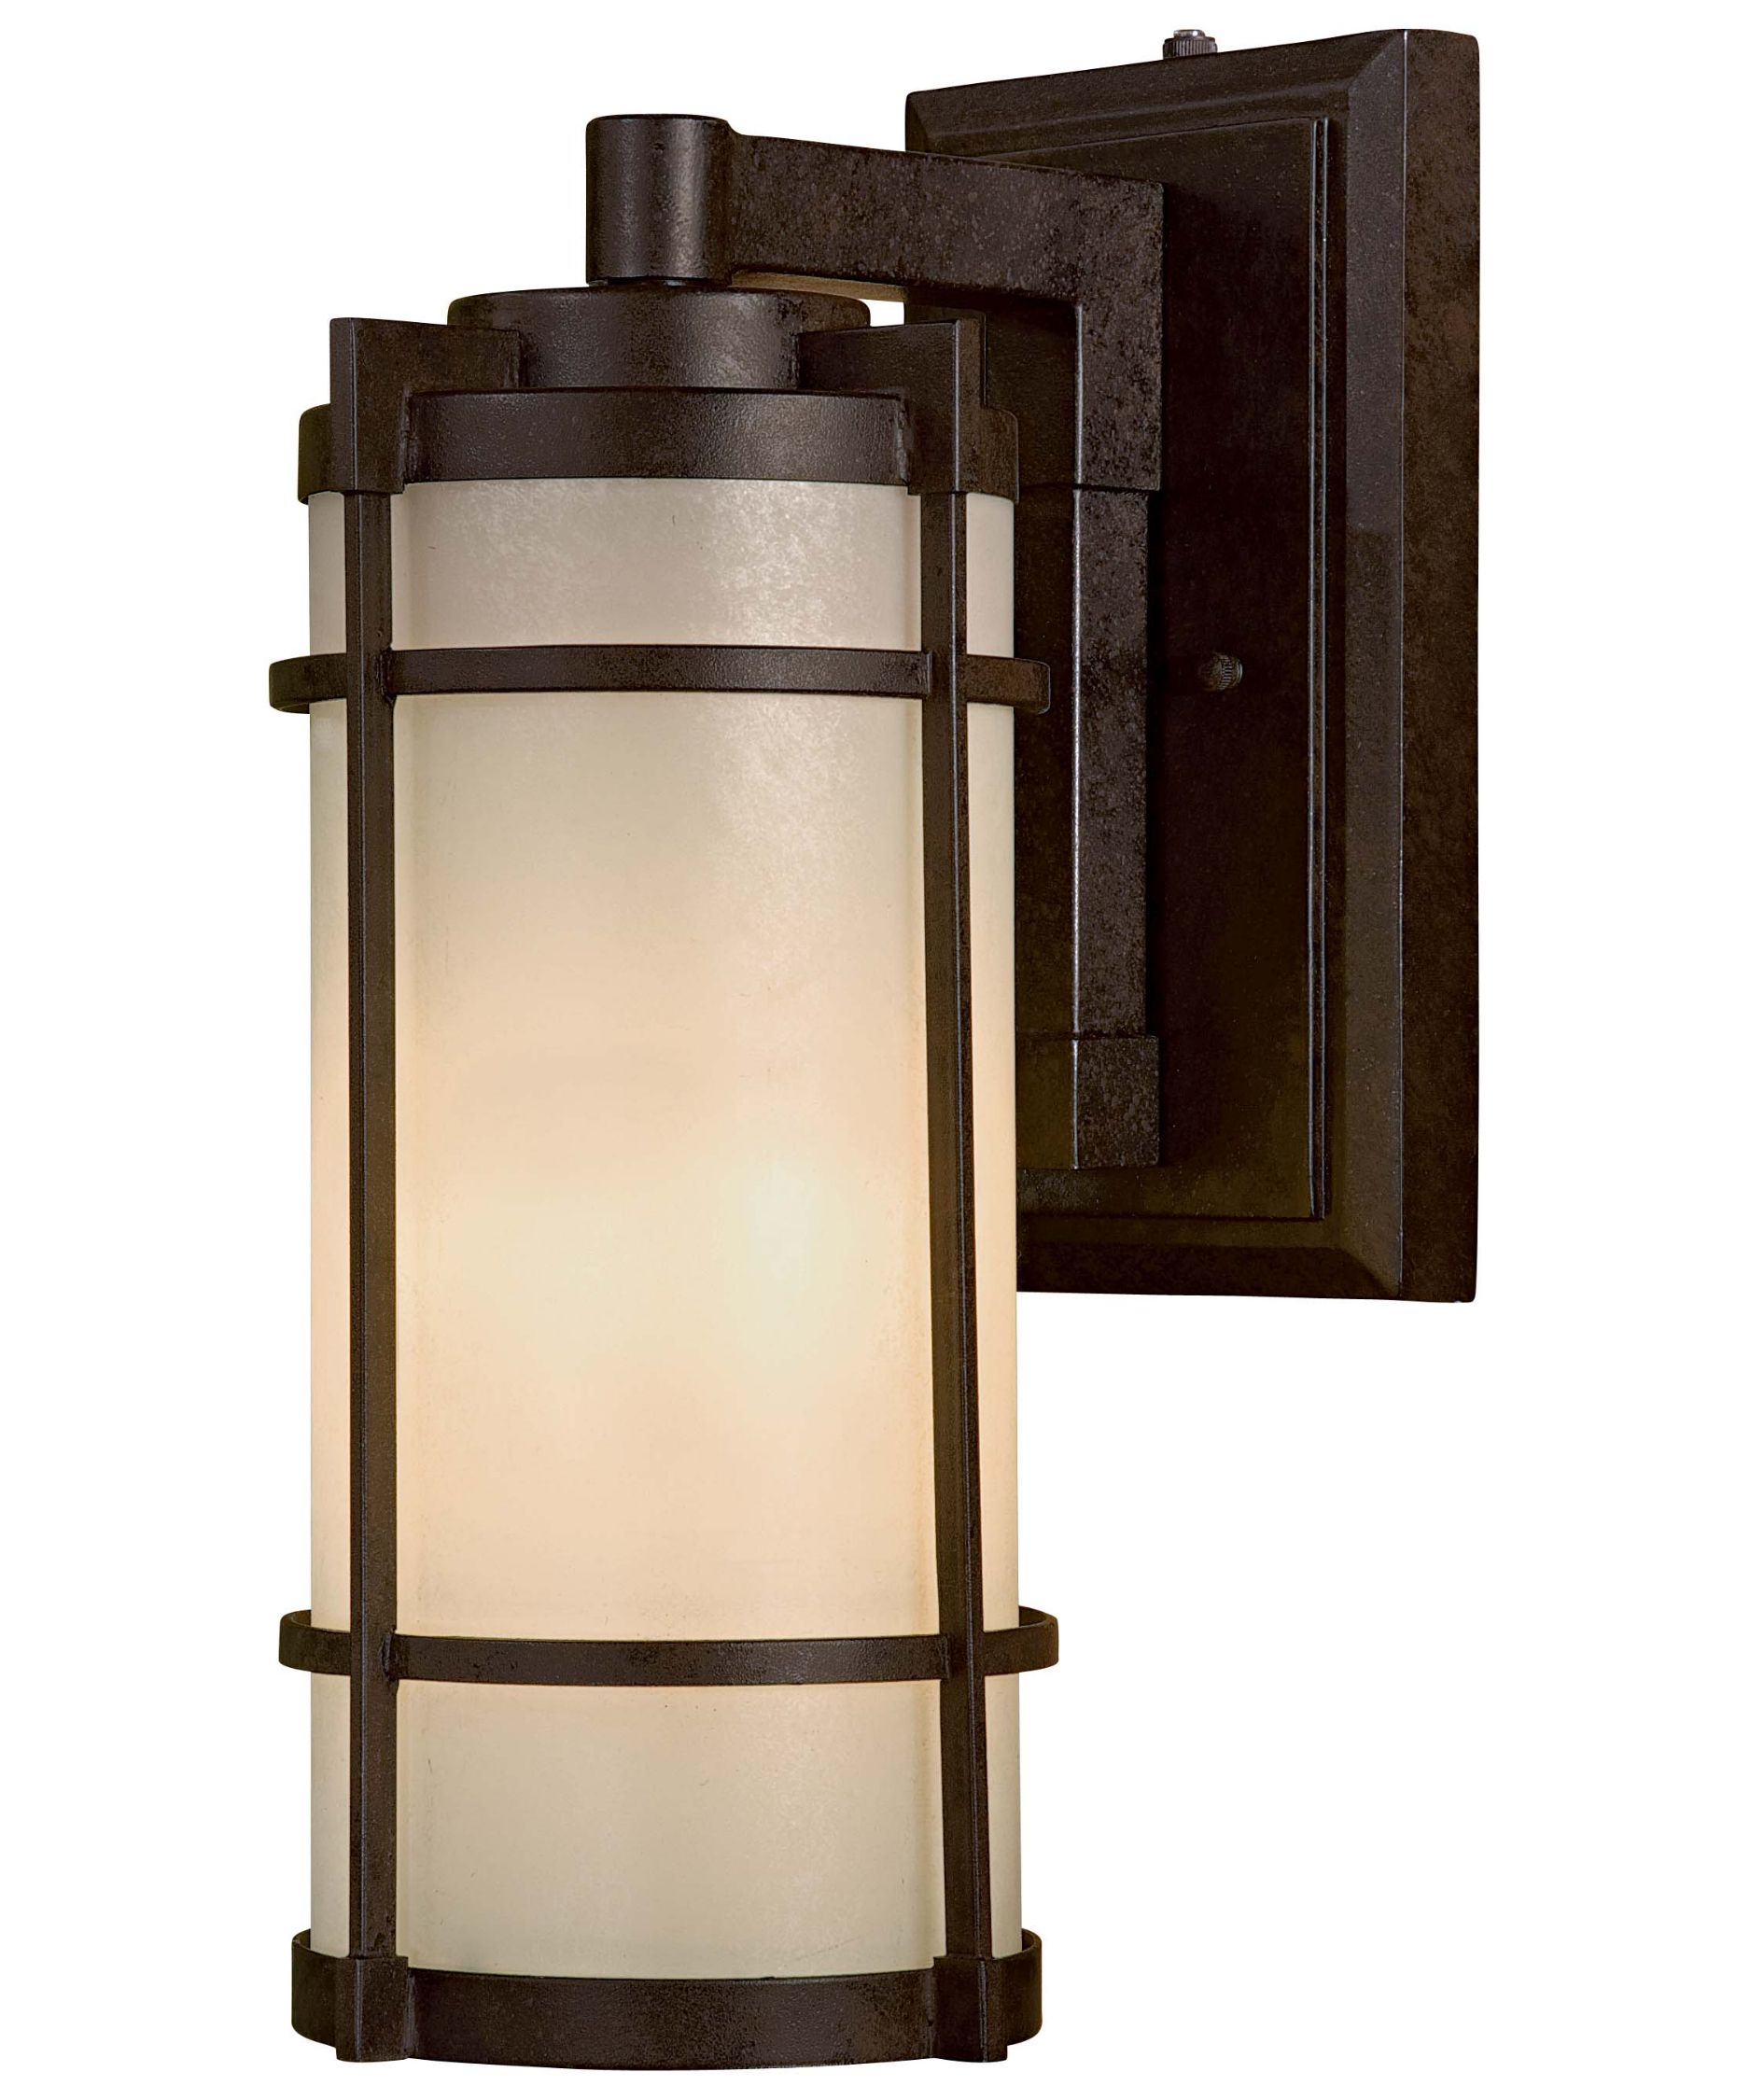 The Great Outdoors Lighting Minka lavery 7 eco lighting pinterest minka the great outdoors by minka lavery andrita court large outdoor sconce lighting universe workwithnaturefo